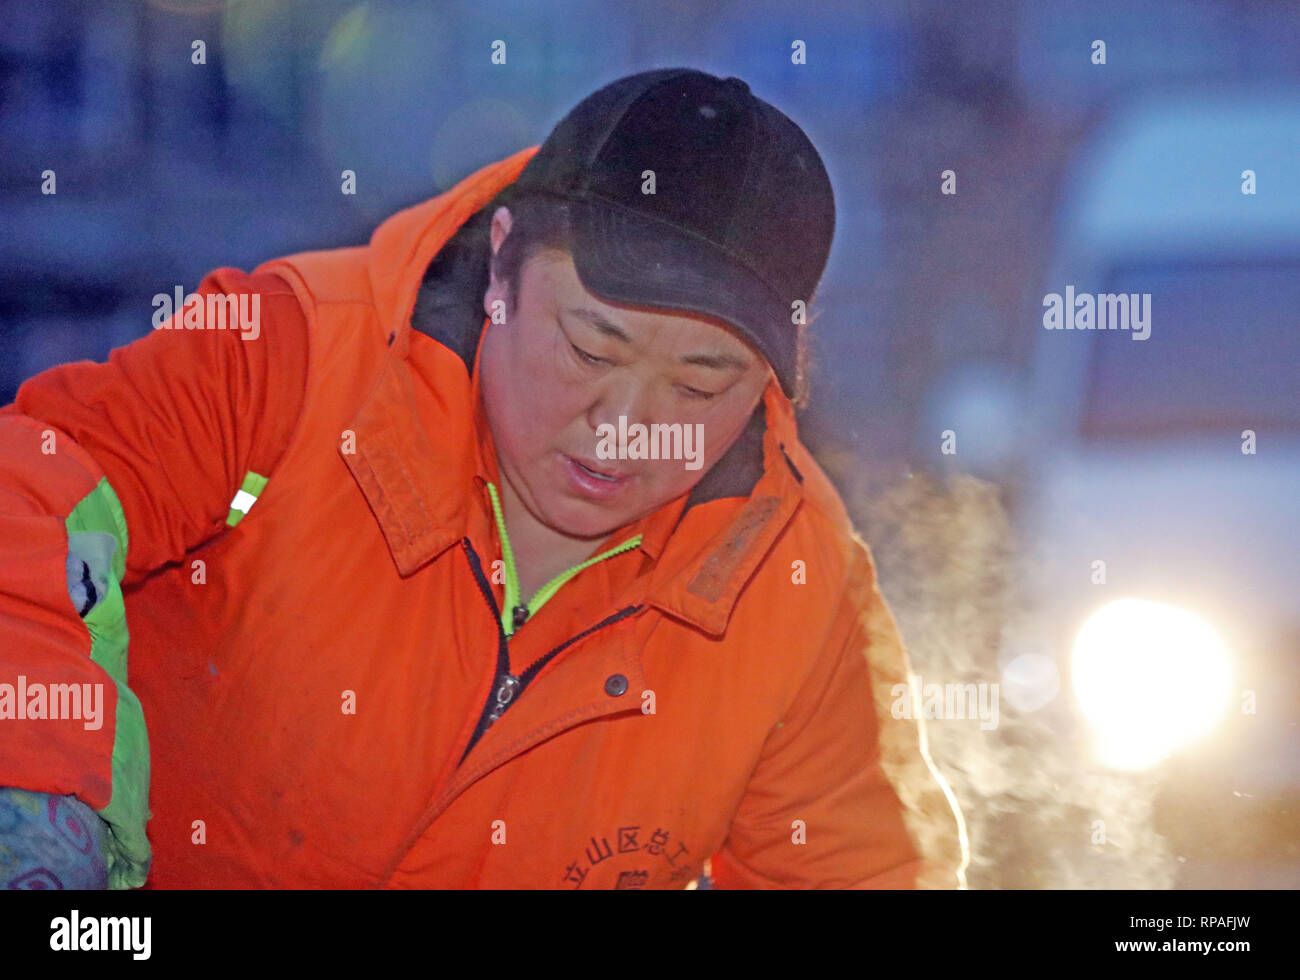 (190221) -- ANSHAN, Feb. 21, 2019 (Xinhua) -- Zhuang Yan, deputy to the 13th National People's Congress(NPC), cleans a street in the Lishan District in Anshan, northeast China's Liaoning Province, Feb. 12, 2019. Zhuang Yan, 47, is a sanitation worker with Hengjie Sanitation Company in the Lishan District of Anshan city.     In addition to performing well in her own work, Zhuang always thinks about how to better play her role as an NPC deputy.      Whenever she goes to a northern city, Zhuang pays much attention to local curbs and their corrosion degree. Based on her research, Zhuang proposed t - Stock Image